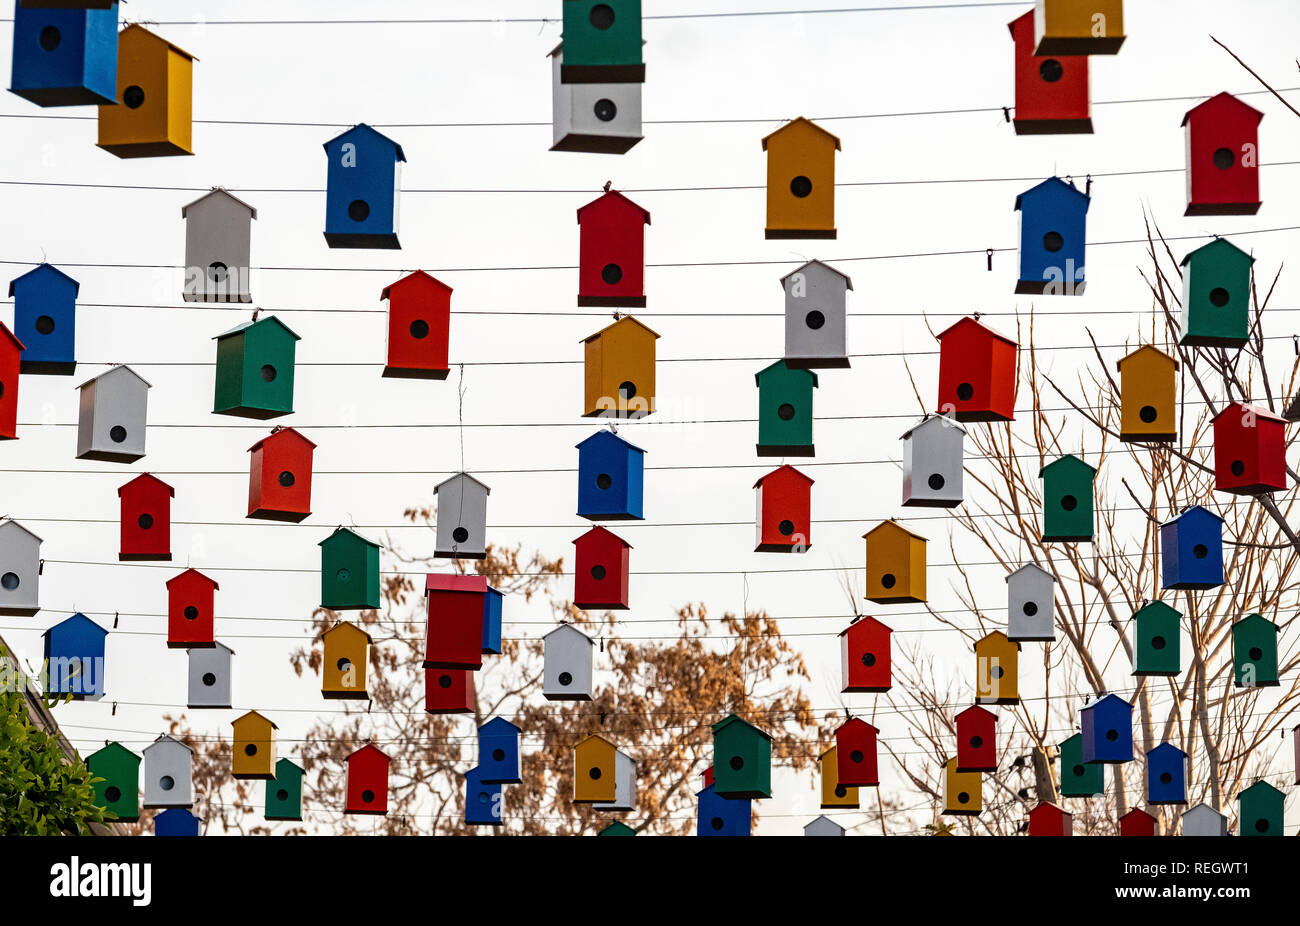 Coloured bird boxes suspended from a wire above a street market in Nicosia Cyprus. - Stock Image